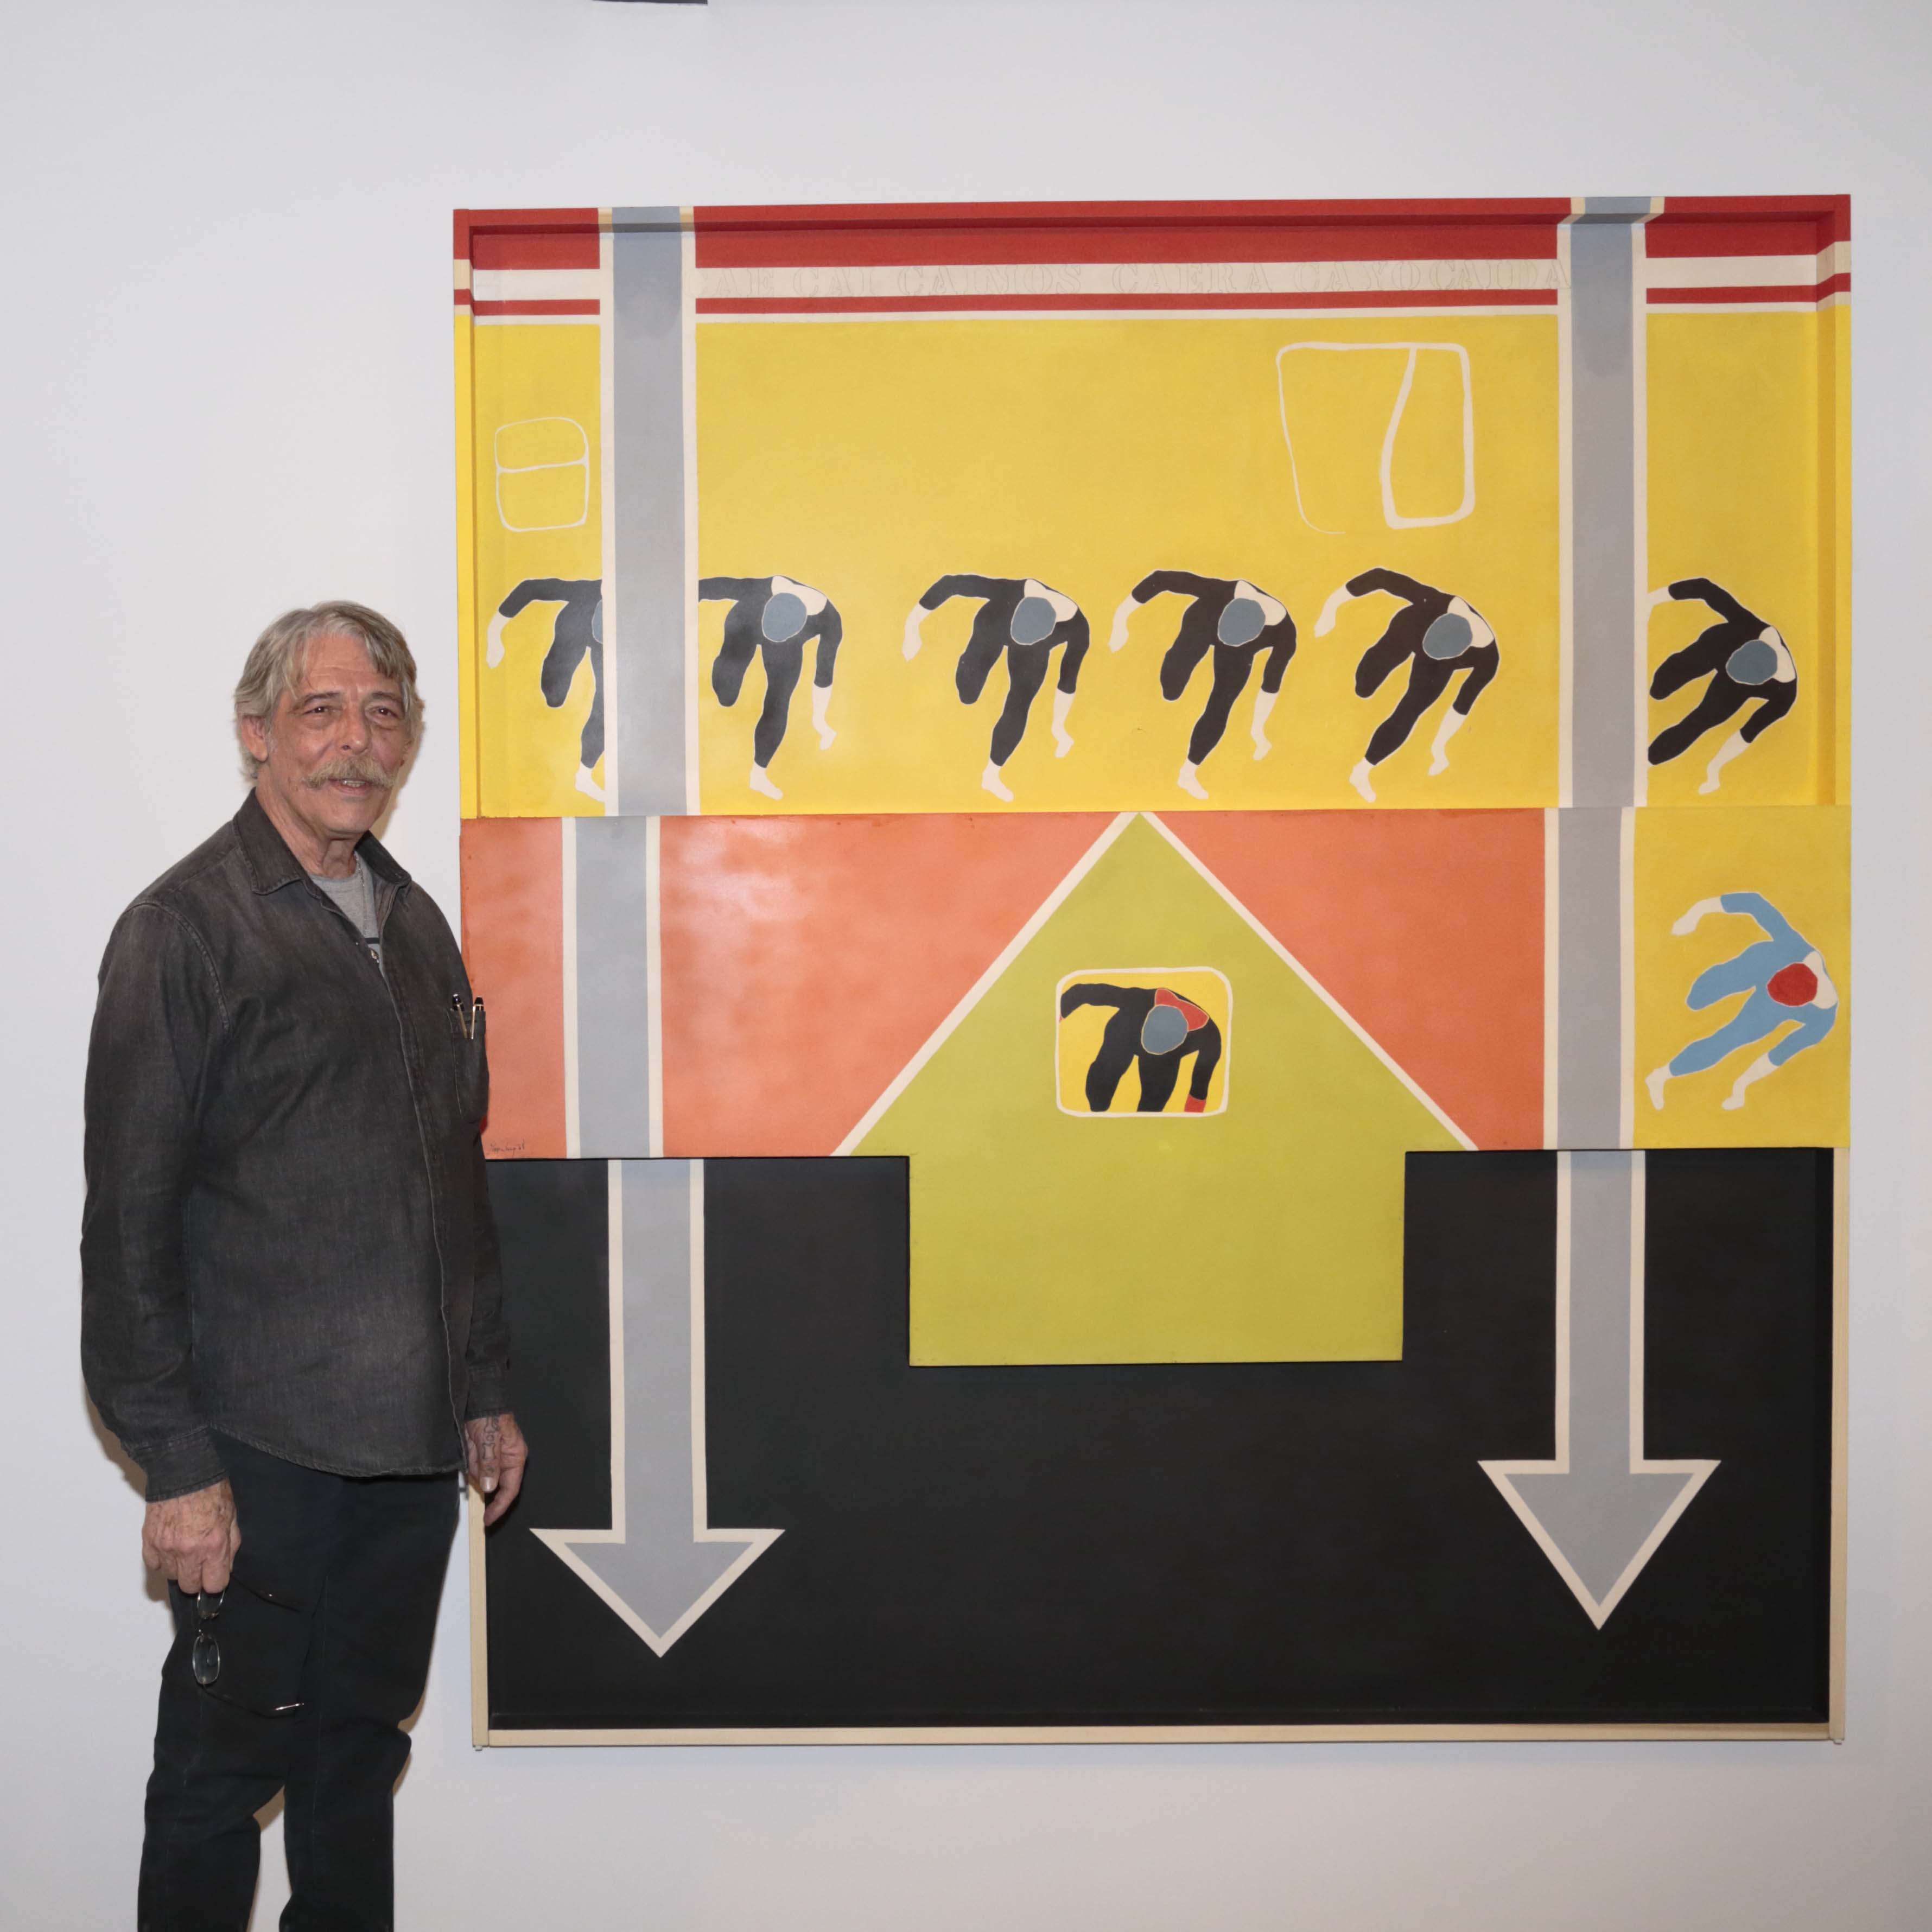 "Felipe Ehrenberg beside his work: ""La caída"". 1968. Acrylic on fiberglass. 200 x 180 x 5.5 cm. Currently in the permanent exhibition of MNCARS, Madrid."